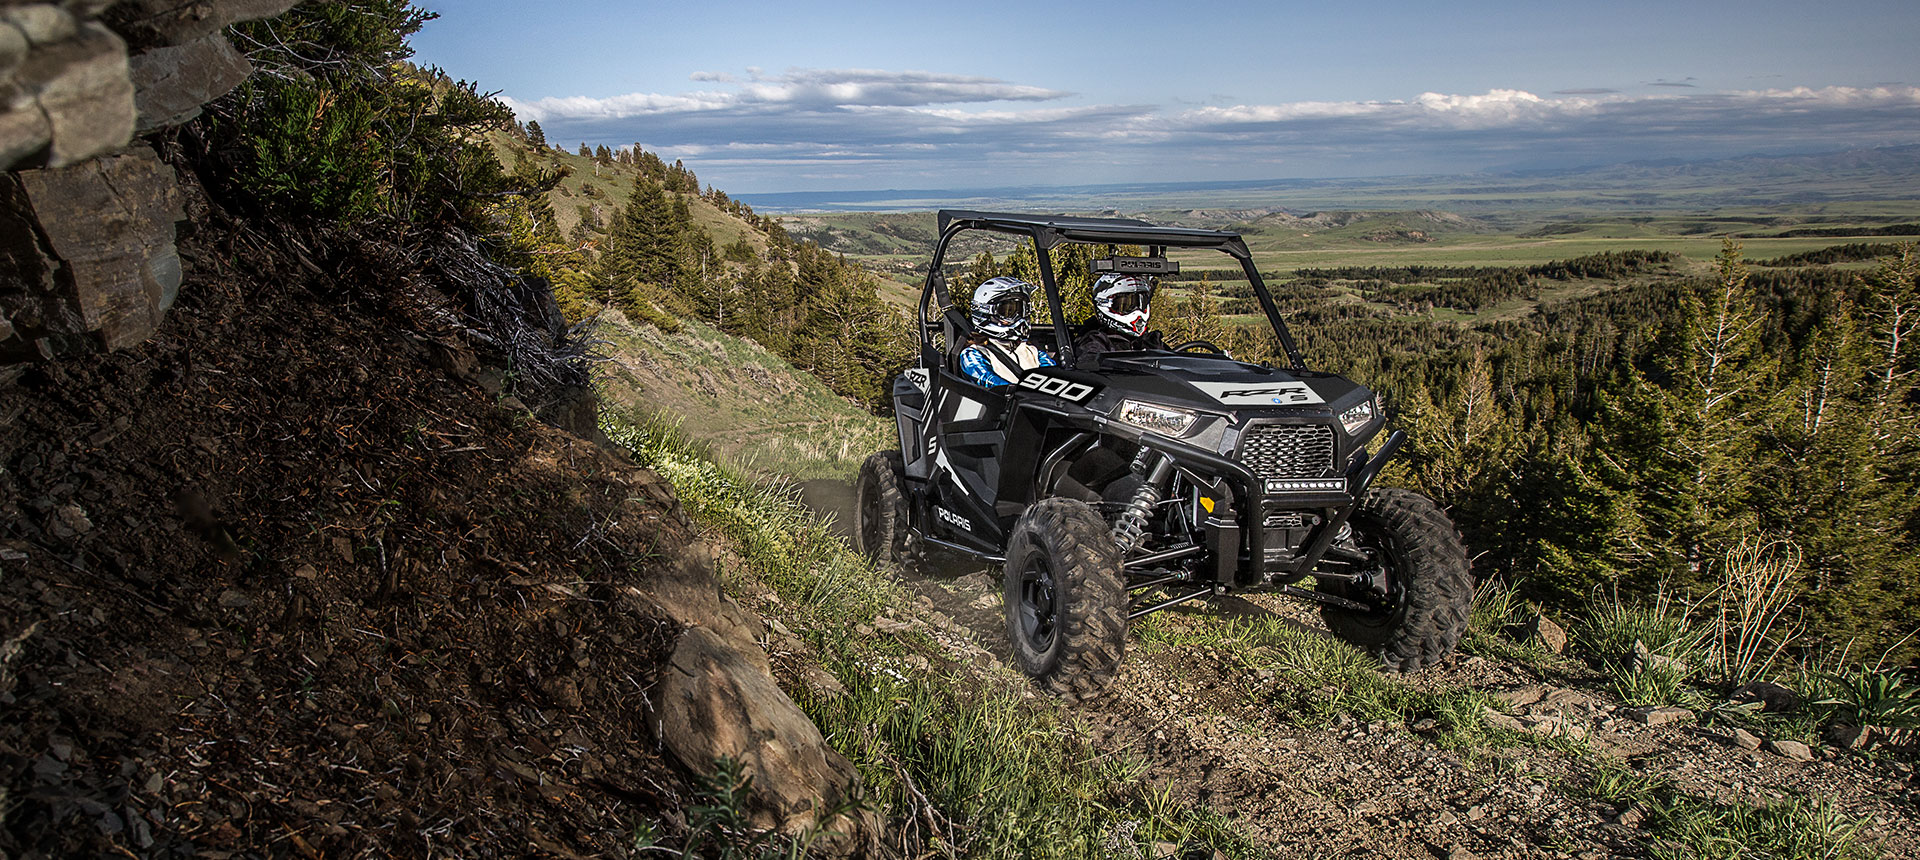 2019 Polaris RZR S 900 EPS in Sumter, South Carolina